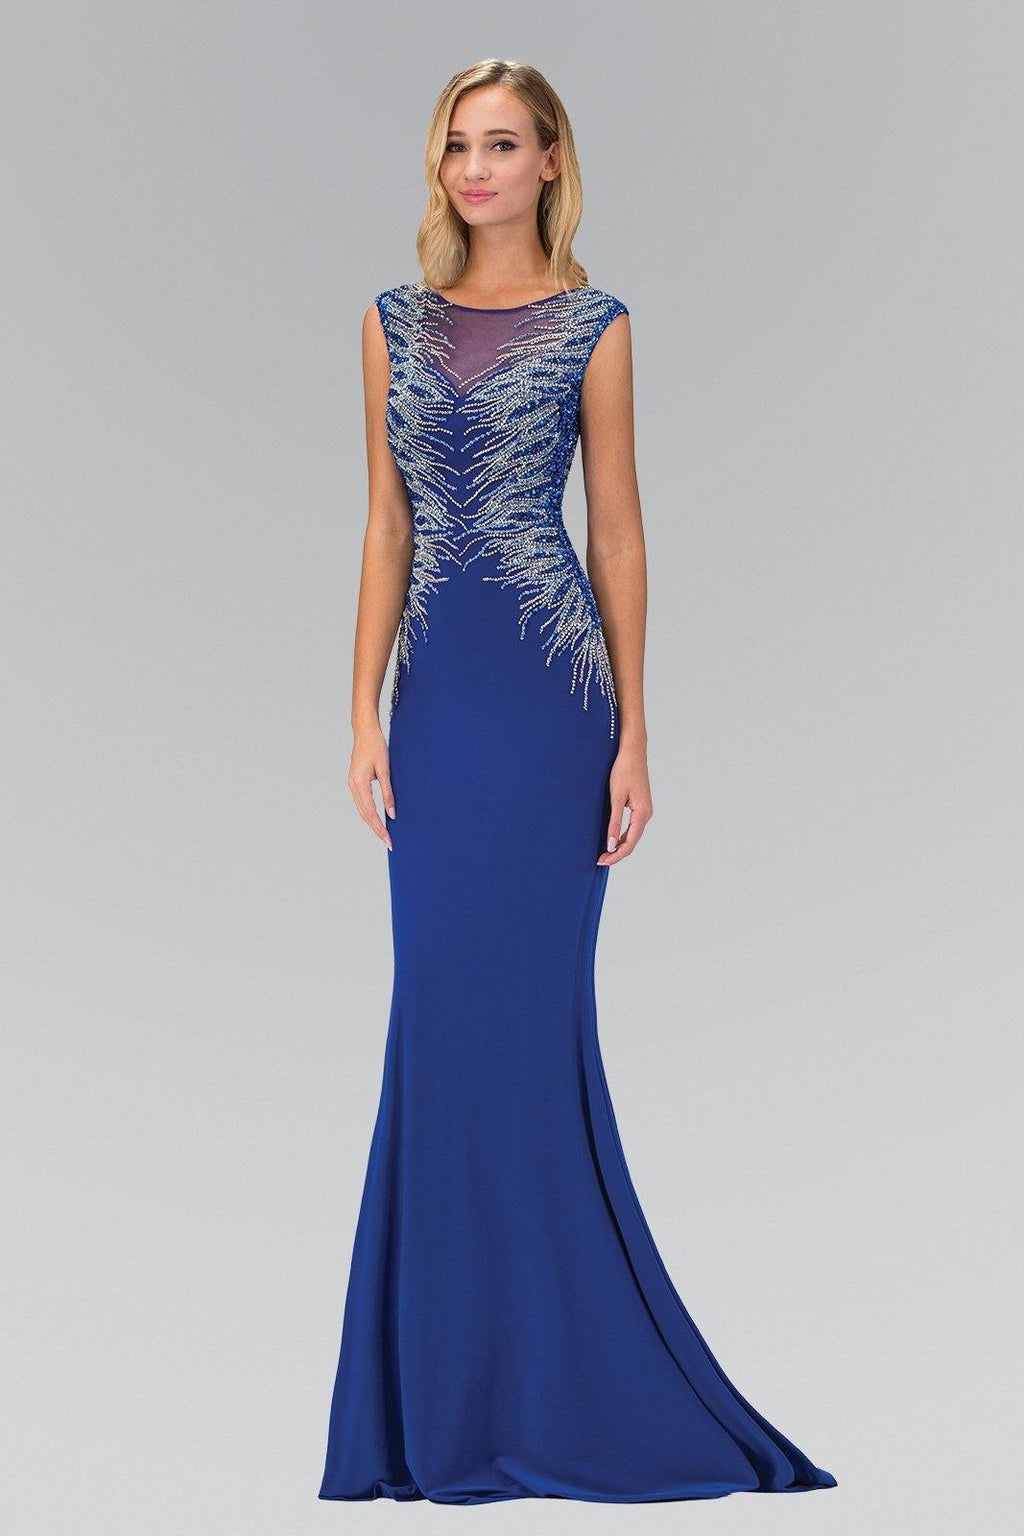 Sparkly long royal blue dress gls 1306-Simply Fab Dress